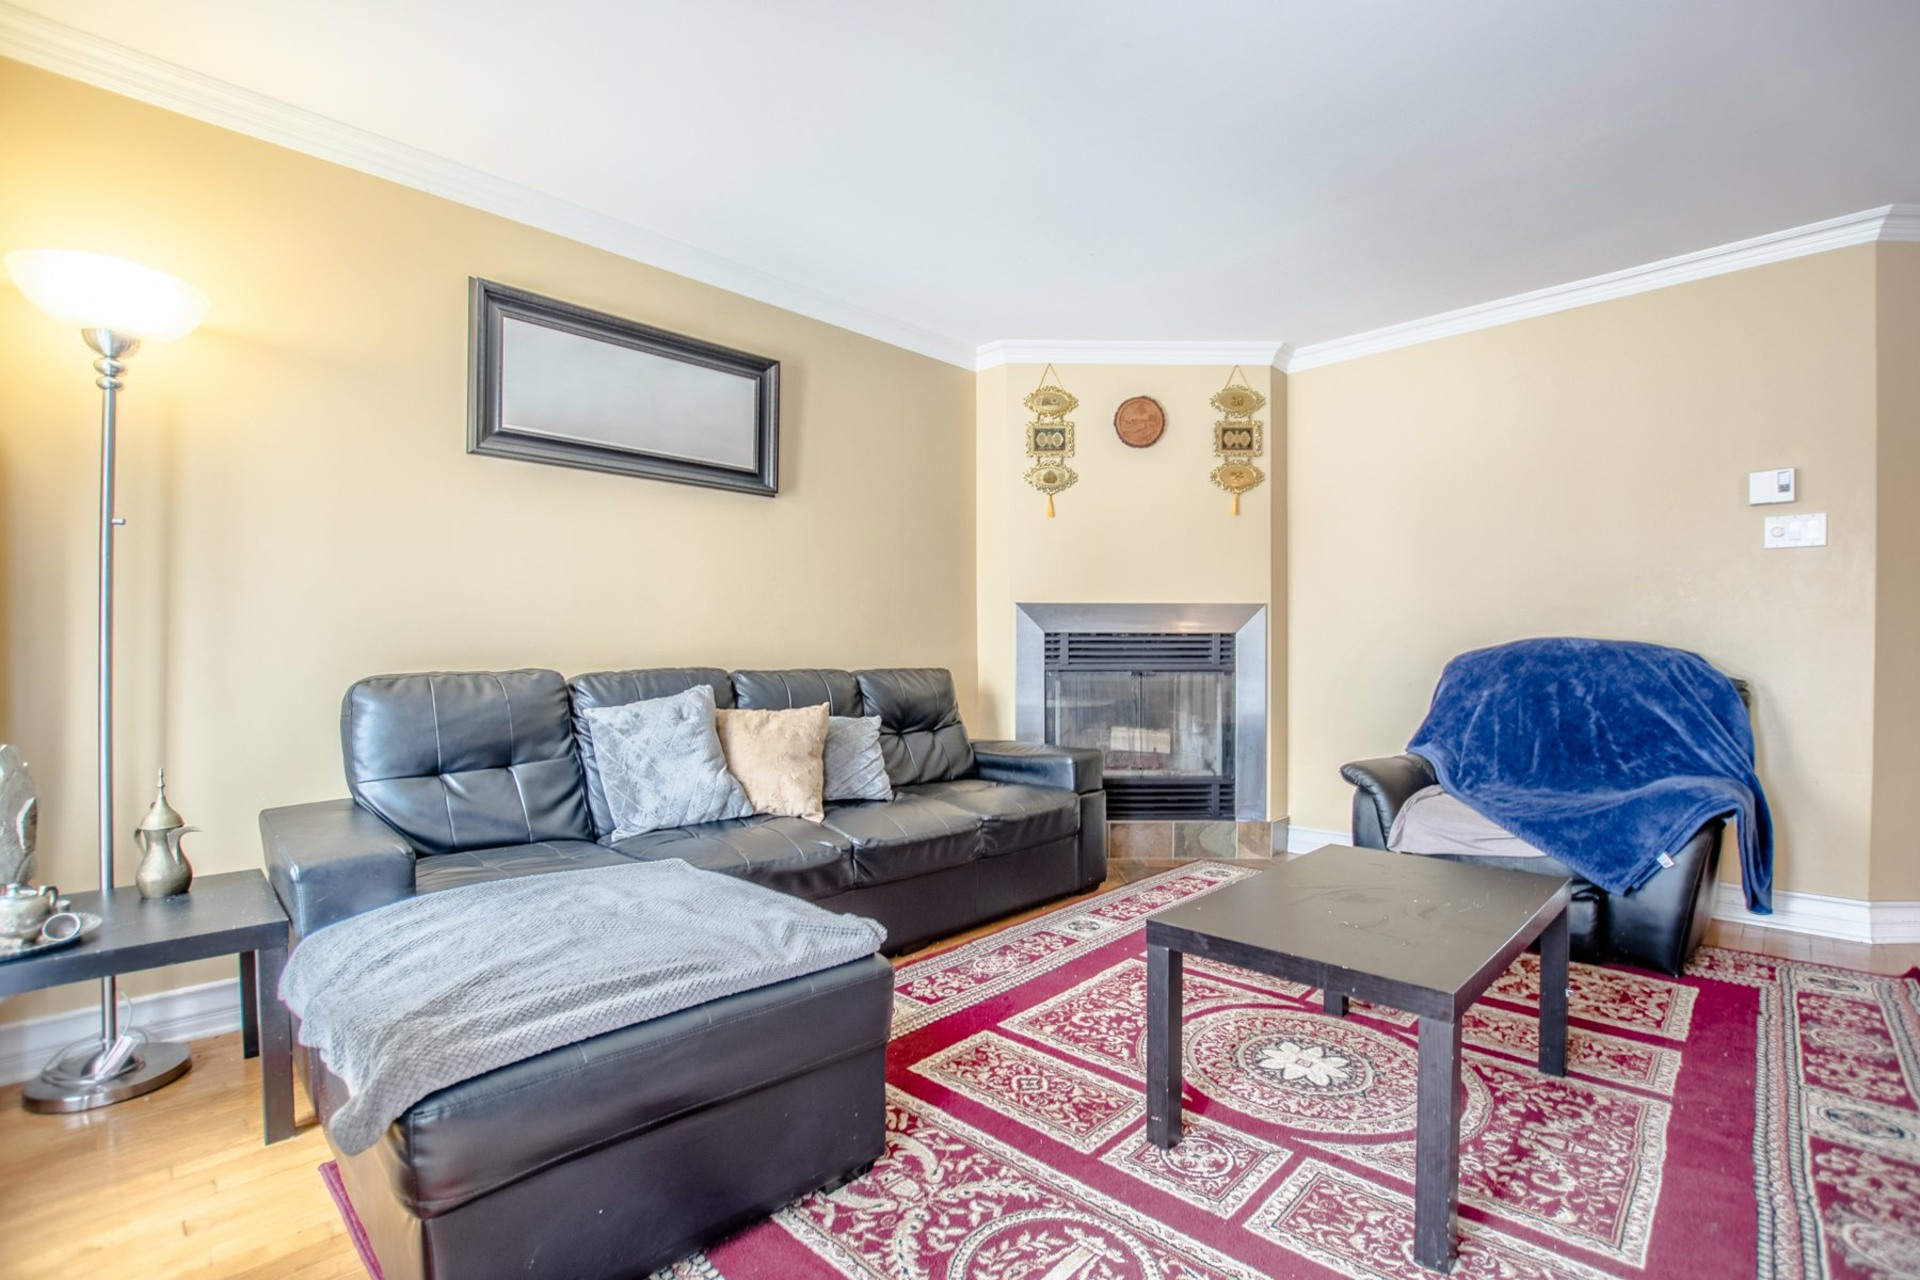 image 2 - House For sale Châteauguay - 10 rooms